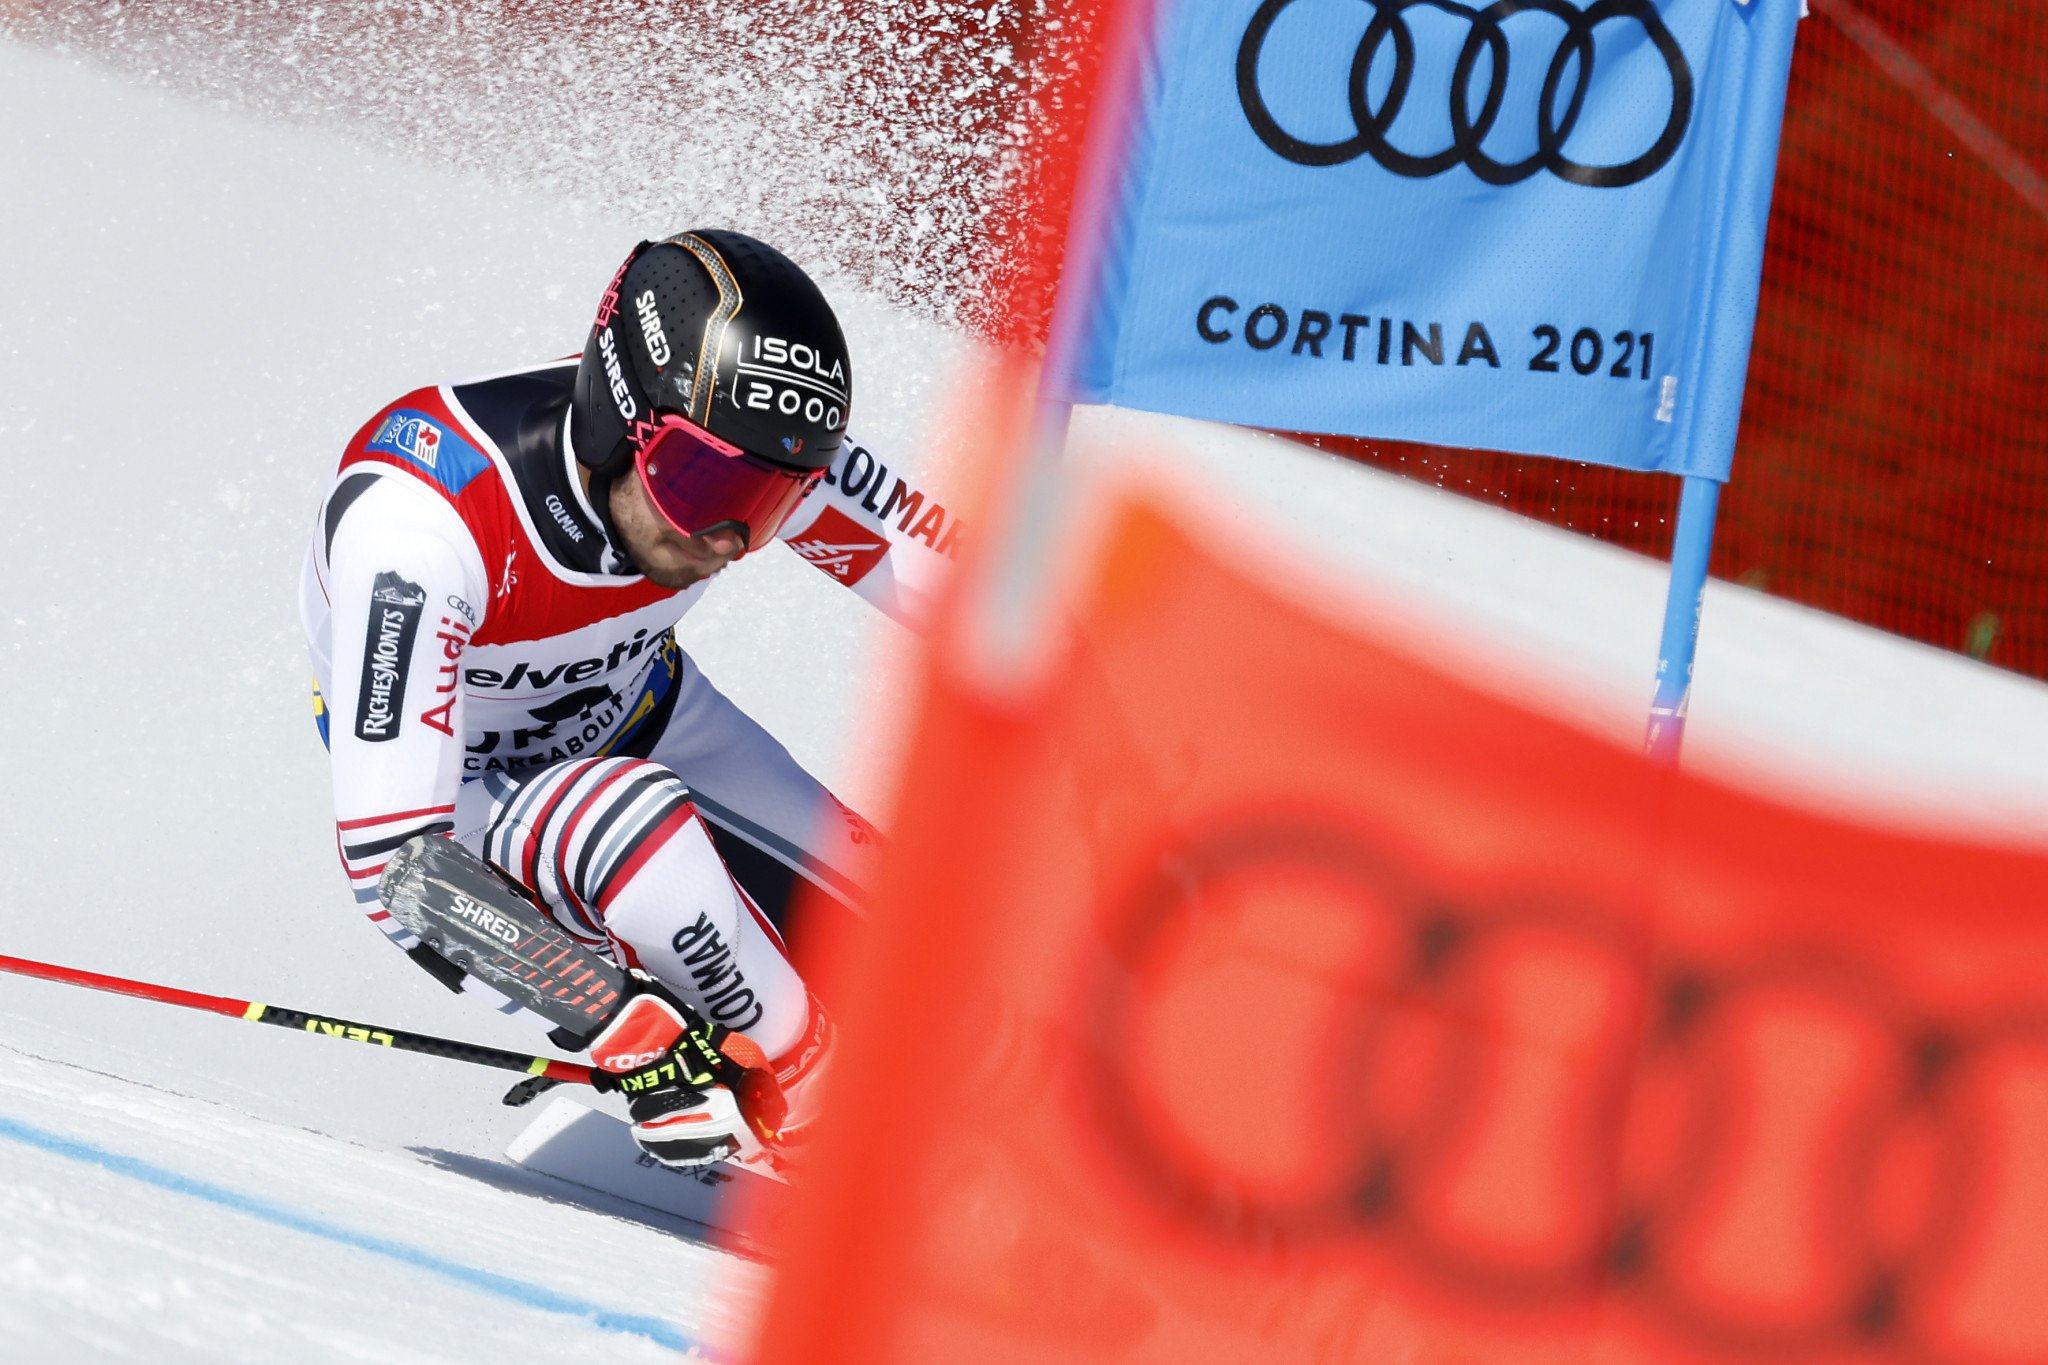 Faivre wins giant slalom title as Pinturault falters at Alpine Ski World Championships